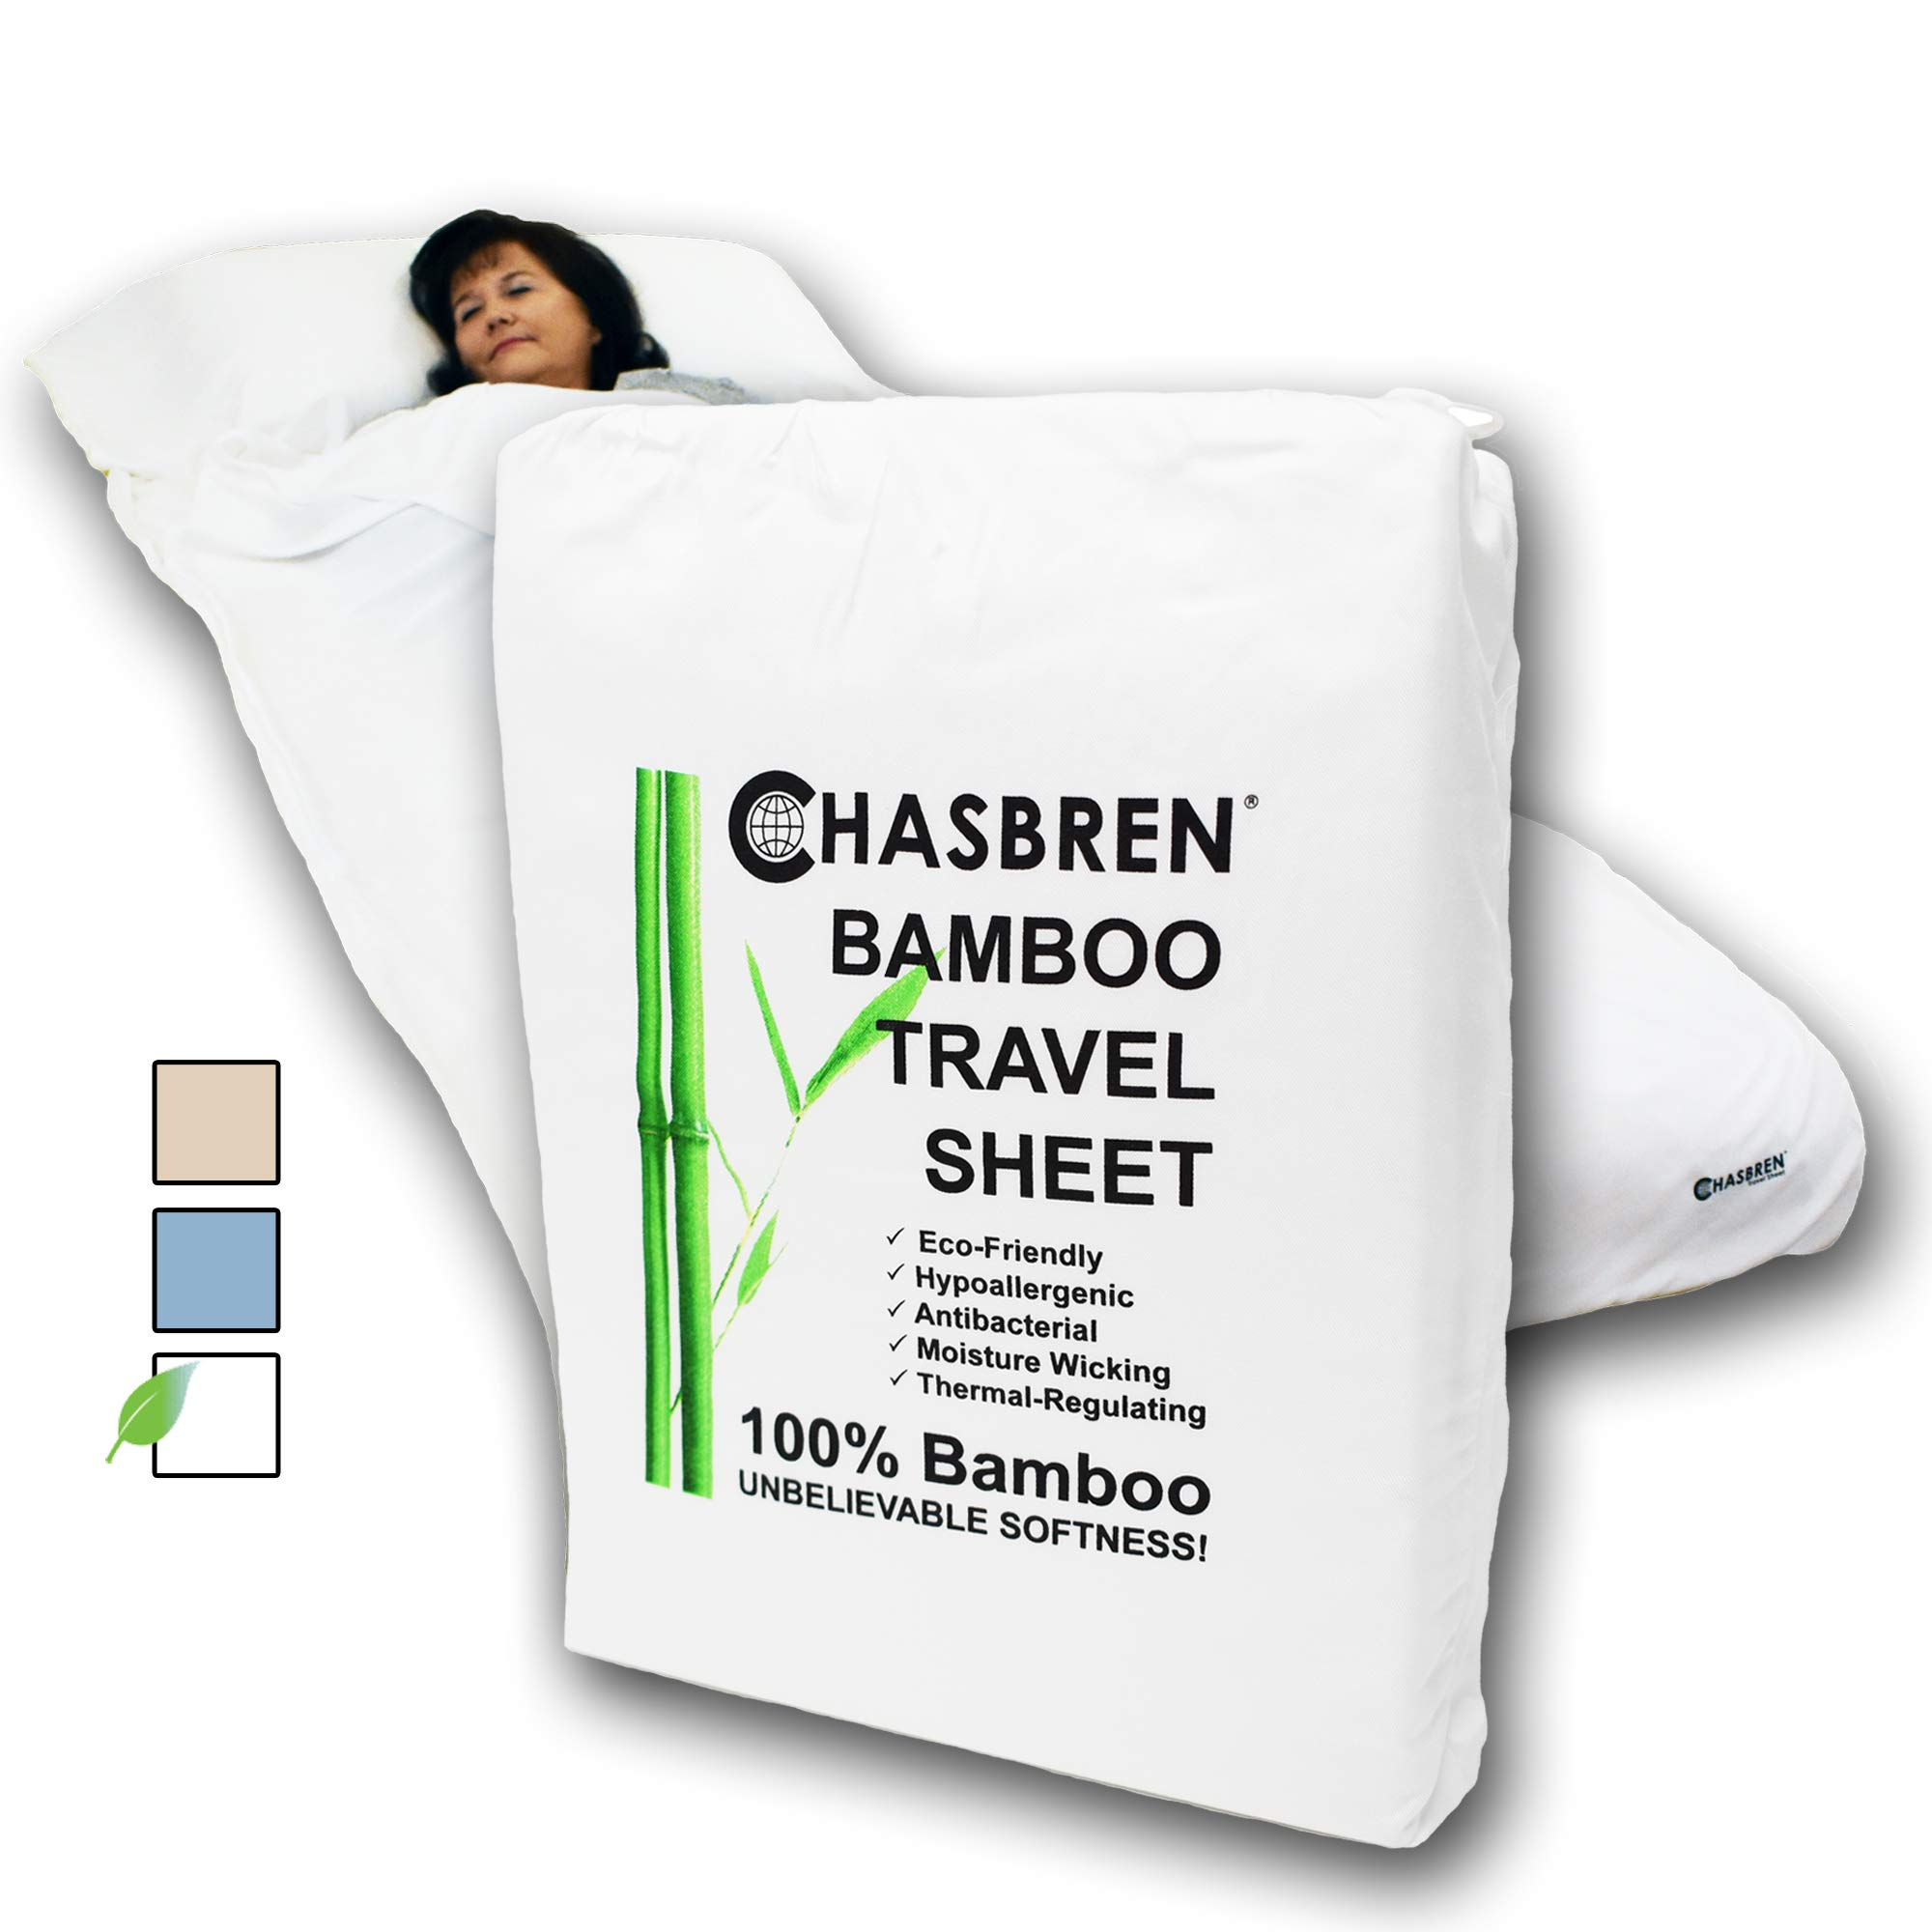 Chasbren Travel Sheet - 100% Bamboo Travel Bedding for Hotel Stays and Other Travels - Soft Comfortable Roomy Lightweight Sleep Sheet, Sack, Bag, Liner - Pillow Pocket, Zippers, Carry Bag (White) by Chasbren